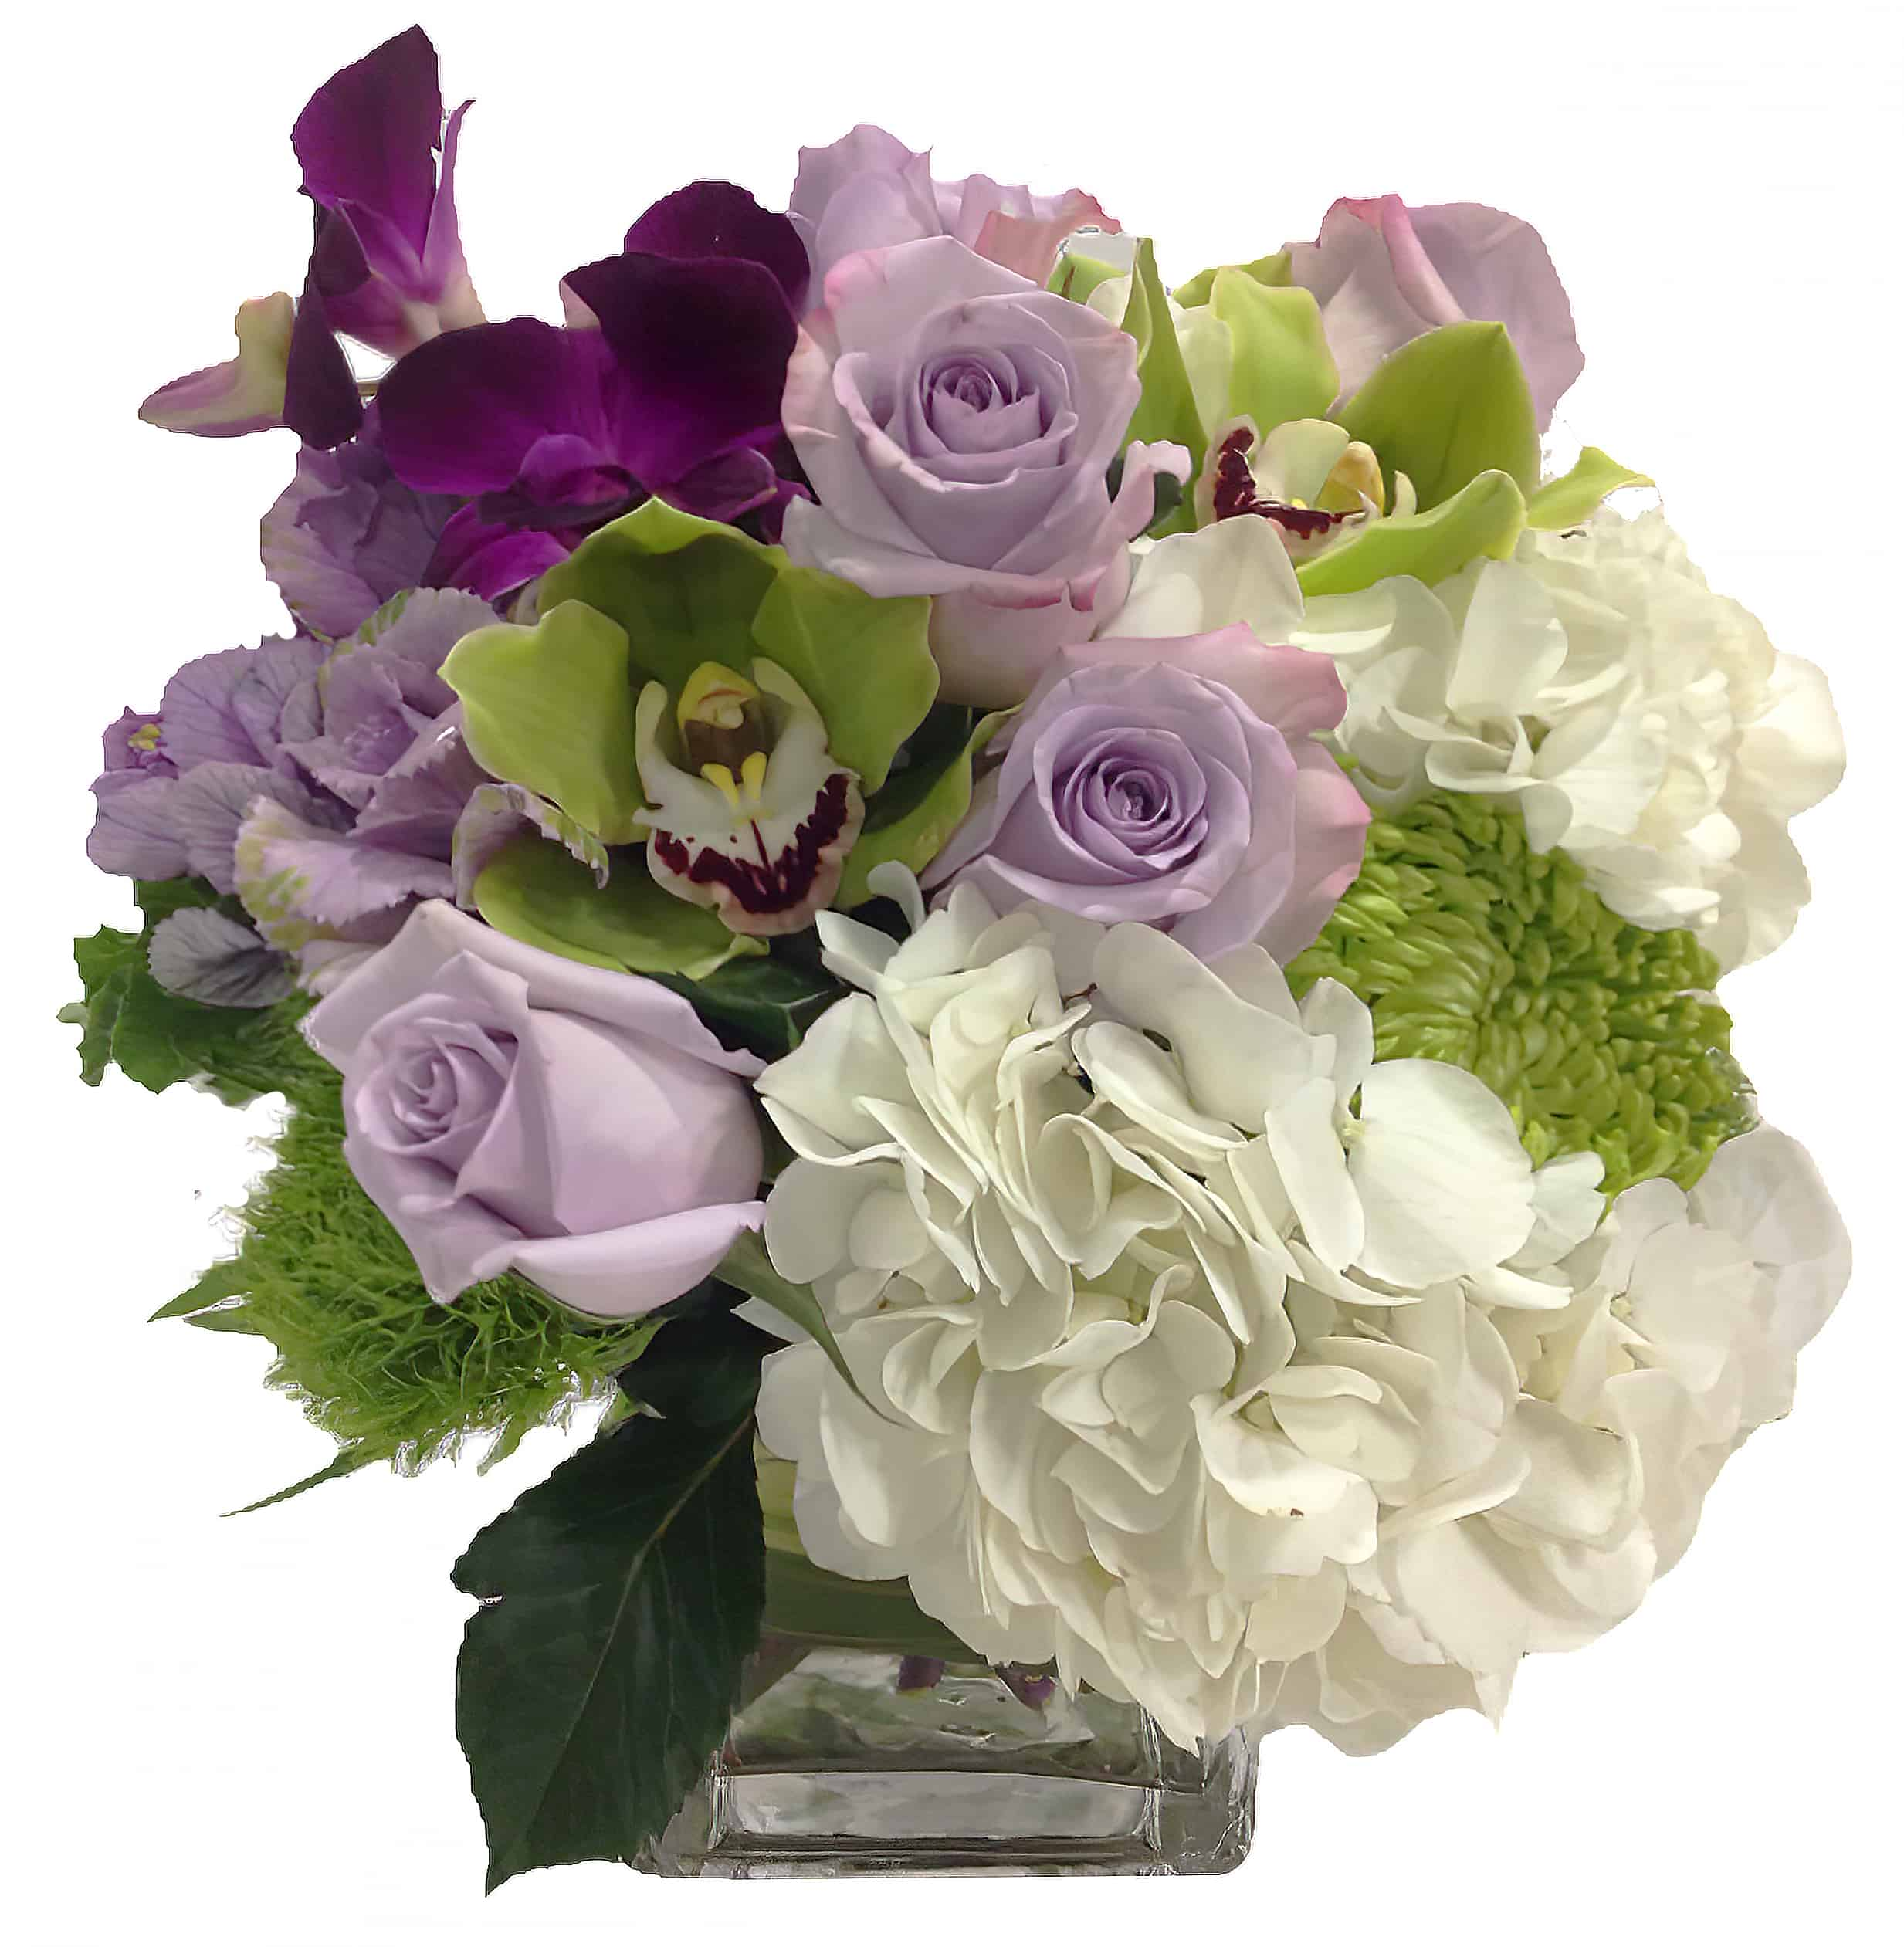 Amethyst Flower Arrangement | San Francisco Florist Since 1871 Free Bay Area and San Francisco Flower Delivery